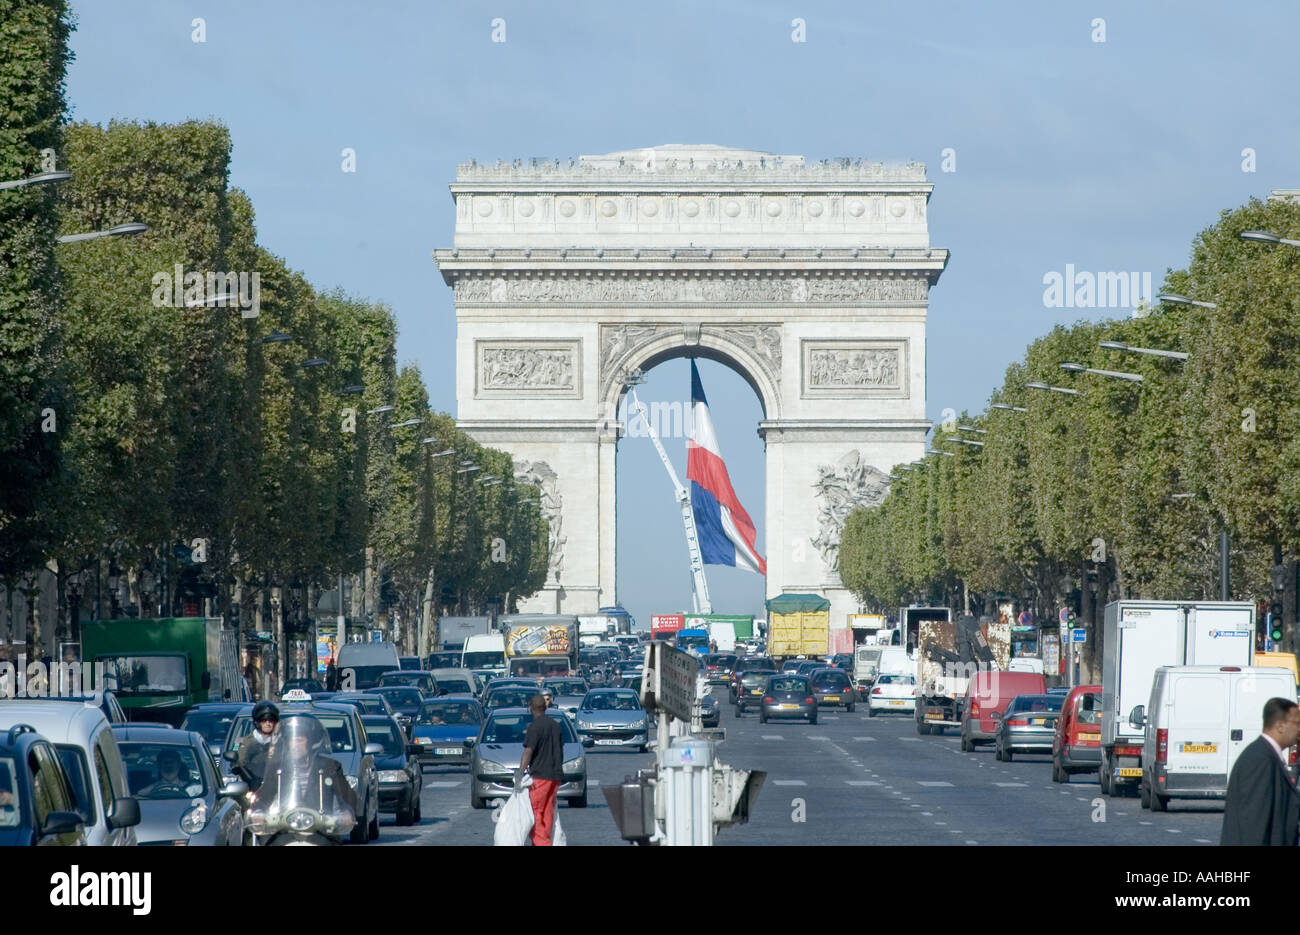 The Arc de Triomphe on the Champs-Élysées in Paris, France - Stock Image